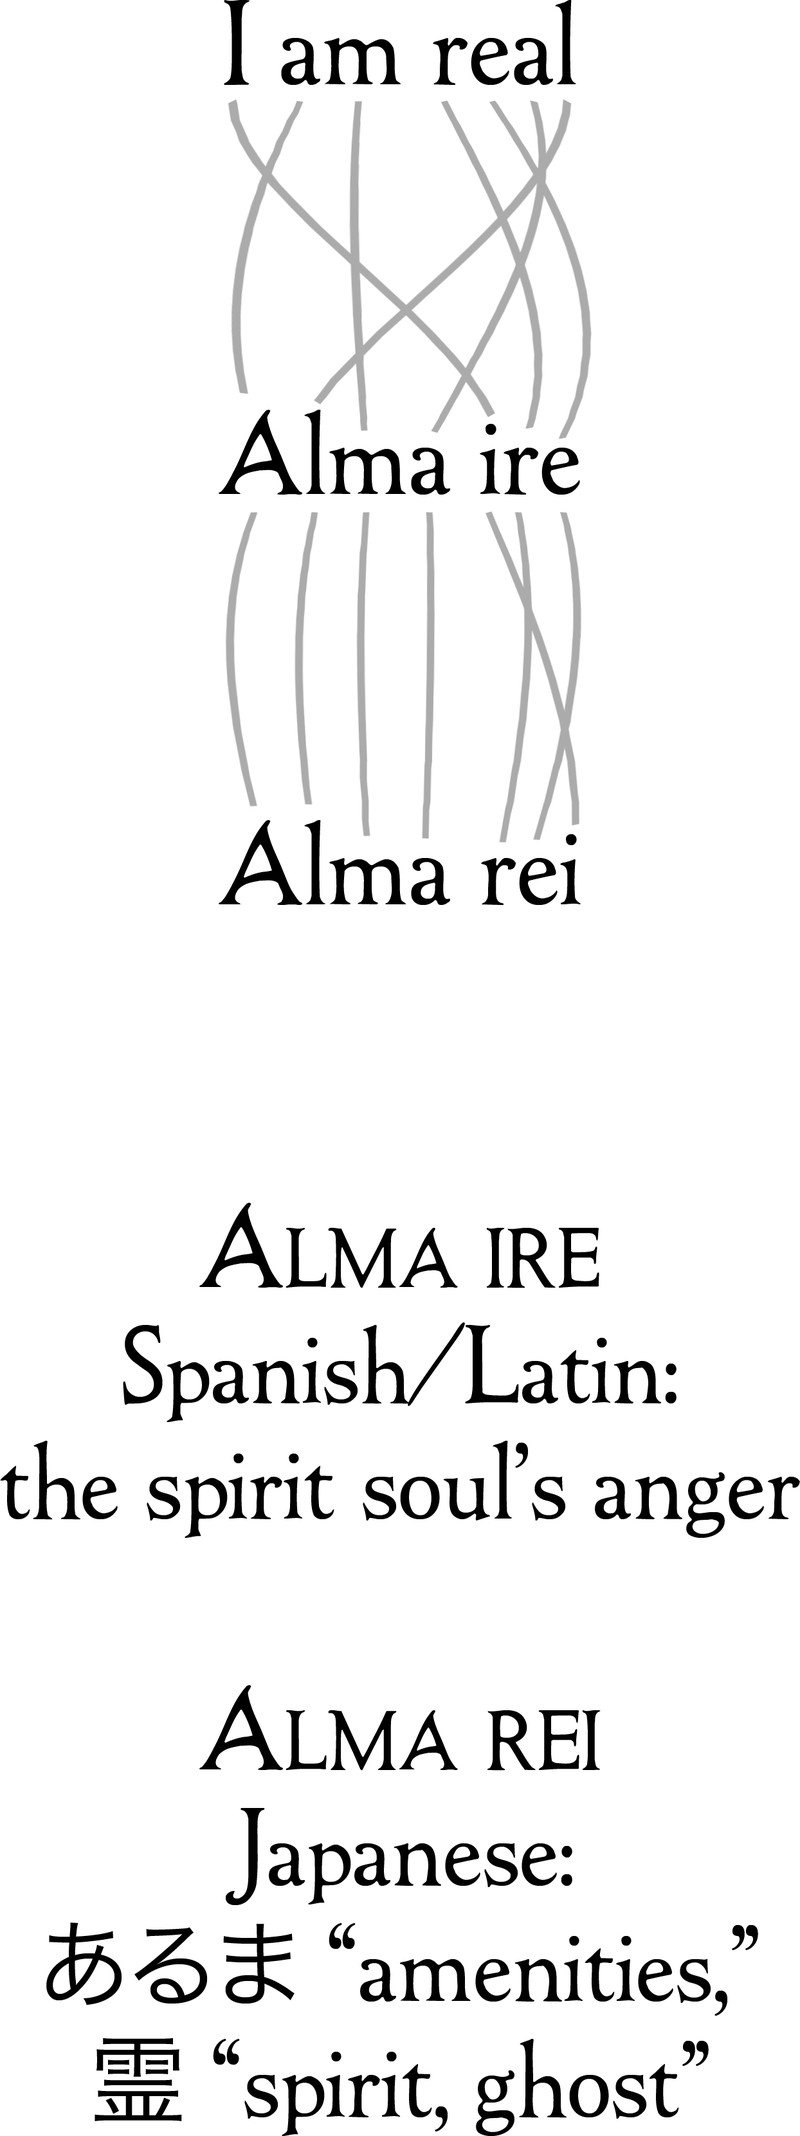 medium resolution of the spanish latin alma ire refers to the spirit soul s righteous anger in japanese alma rei refers to a ghost s amenities or useful features